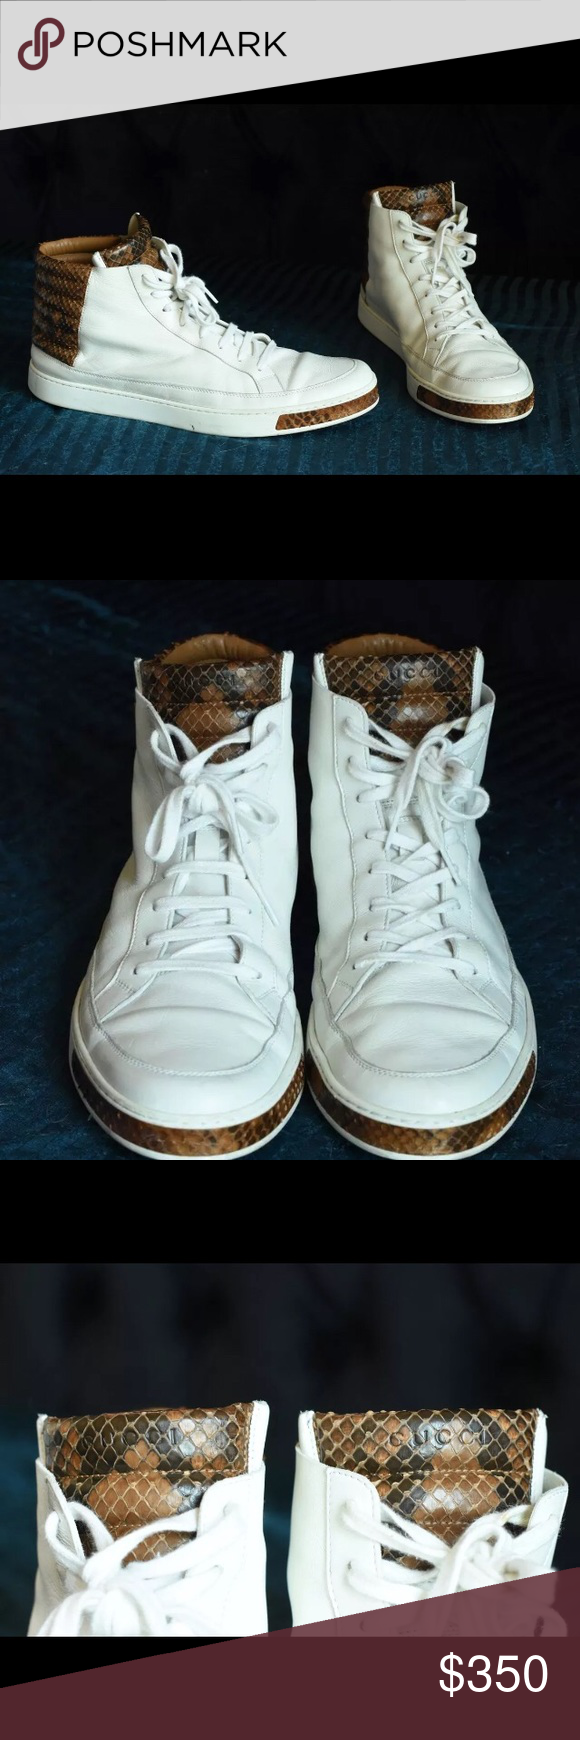 26887934037 Gucci python snake skin white leather hi top In excellent like new  condition - very clean 100% authentic Leather upper Python trim Leather  lining Rubber ...